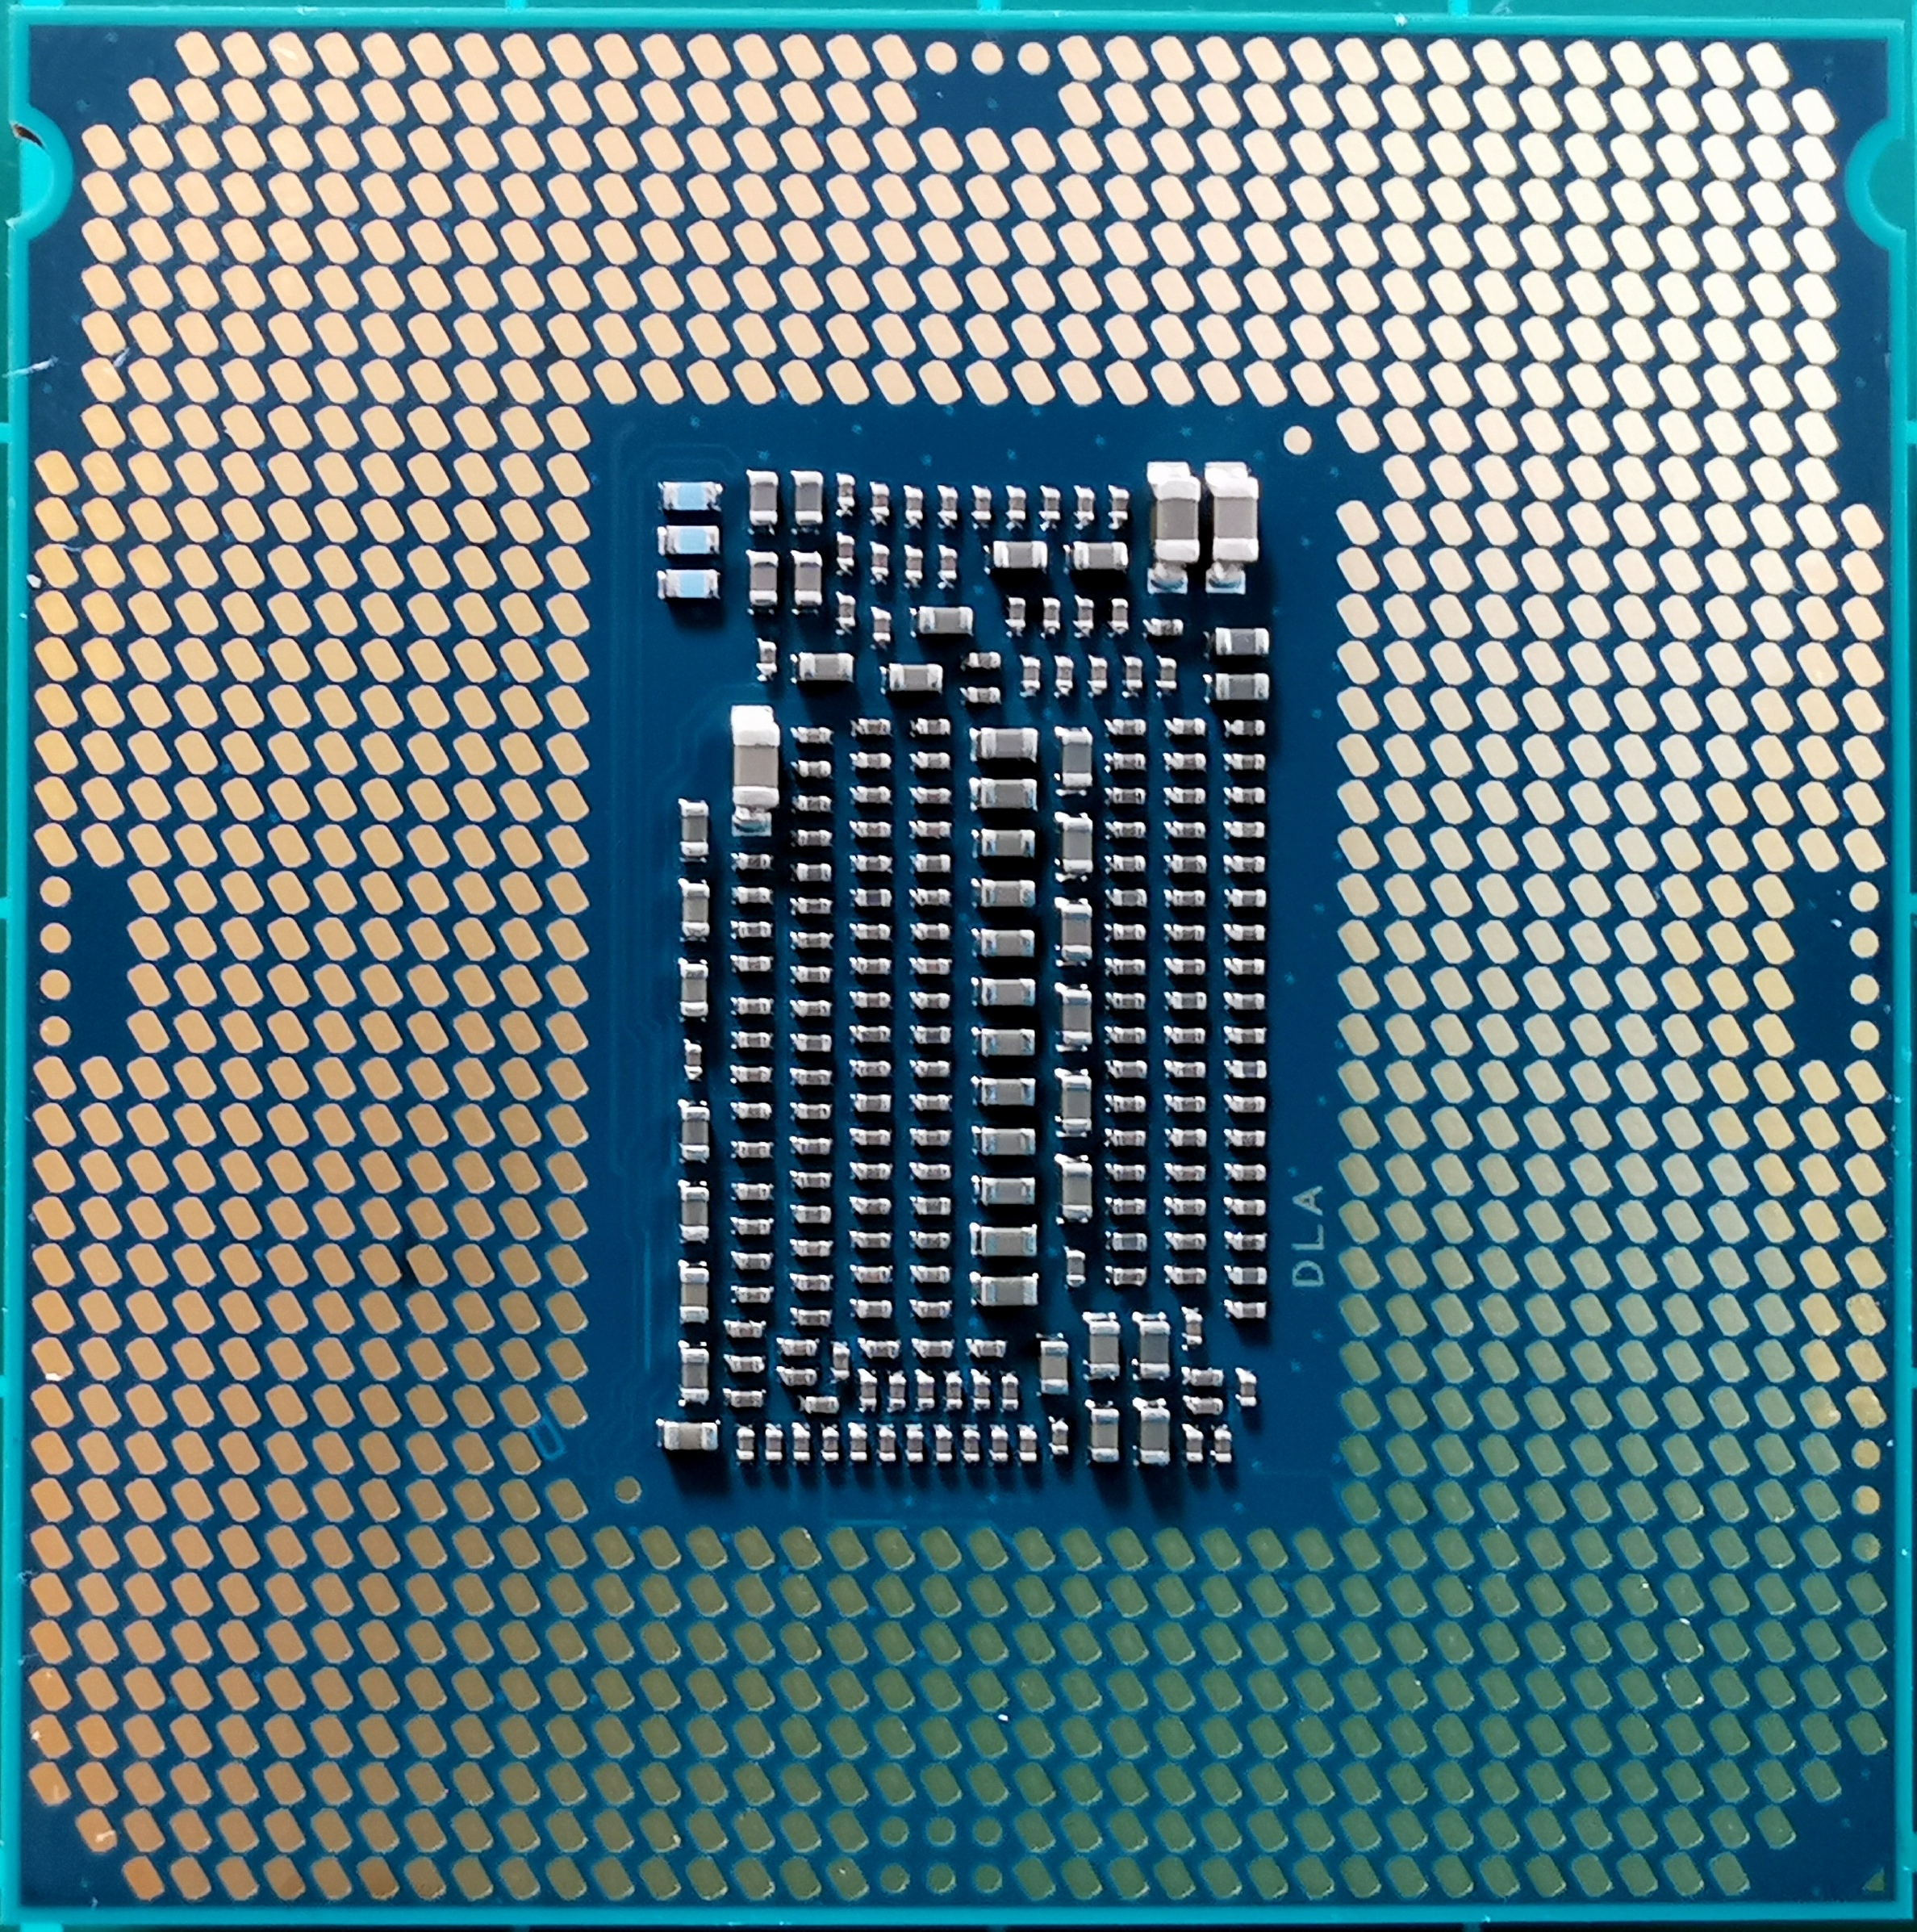 Upgrading from an Intel Core i7-2600K: Testing Sandy Bridge